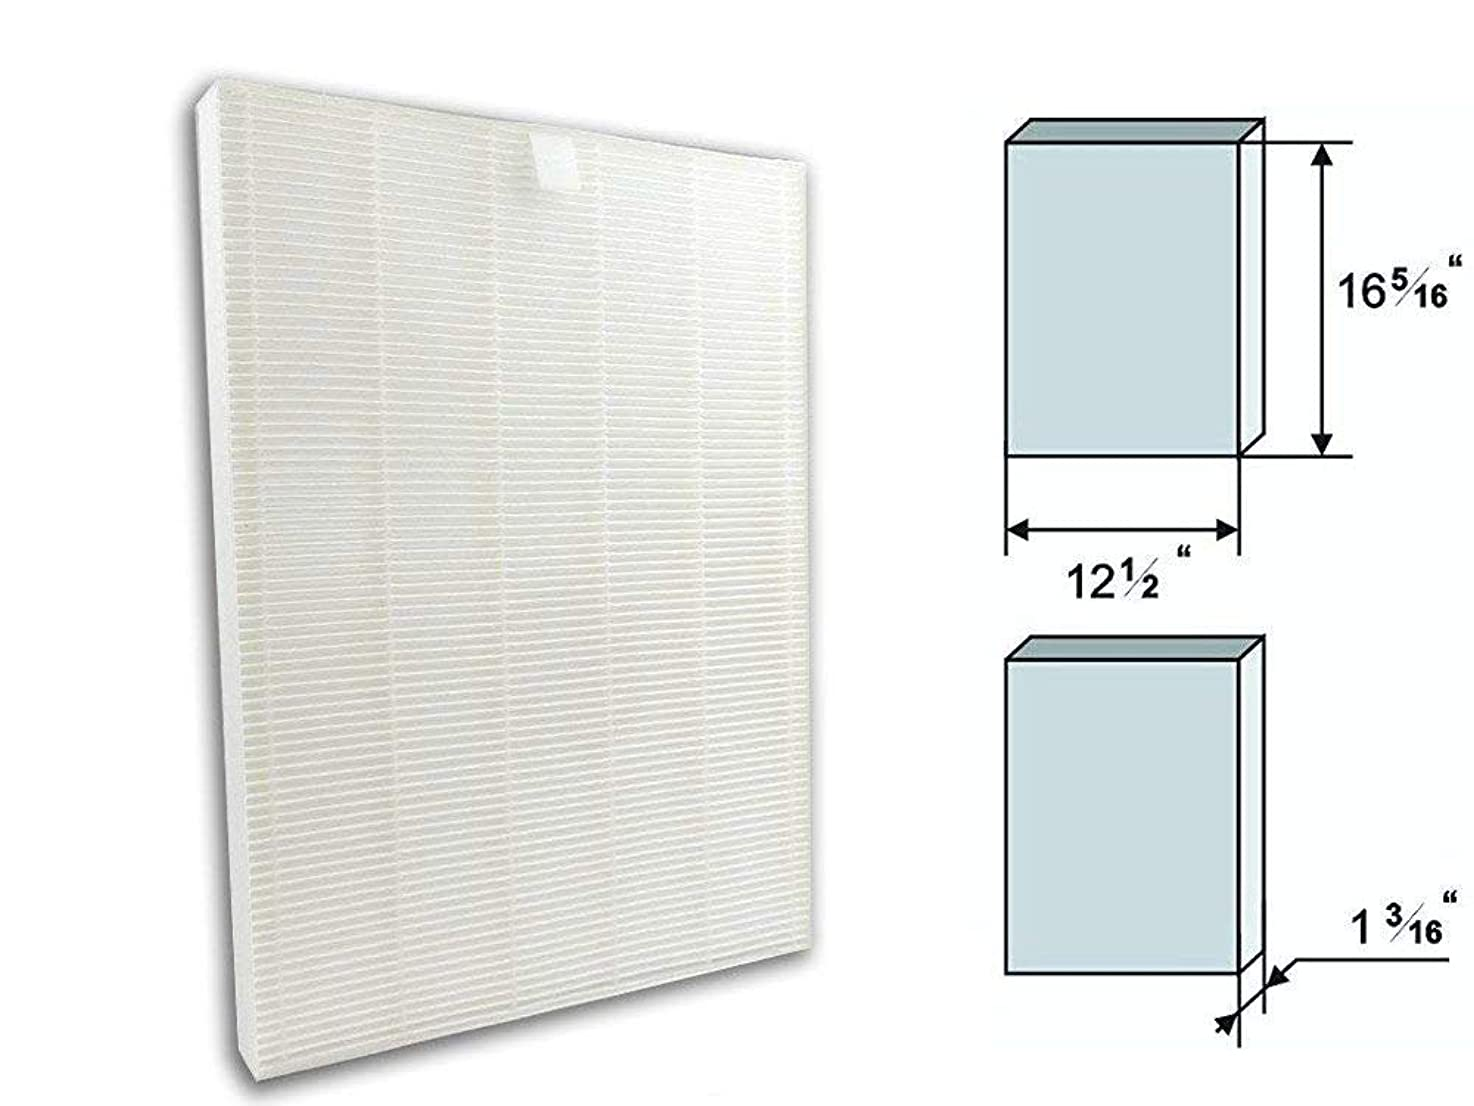 GOODVAC Replacement HEPA Filter for Fellowes AeraMax 290/300 / DX95 Air Purifiers